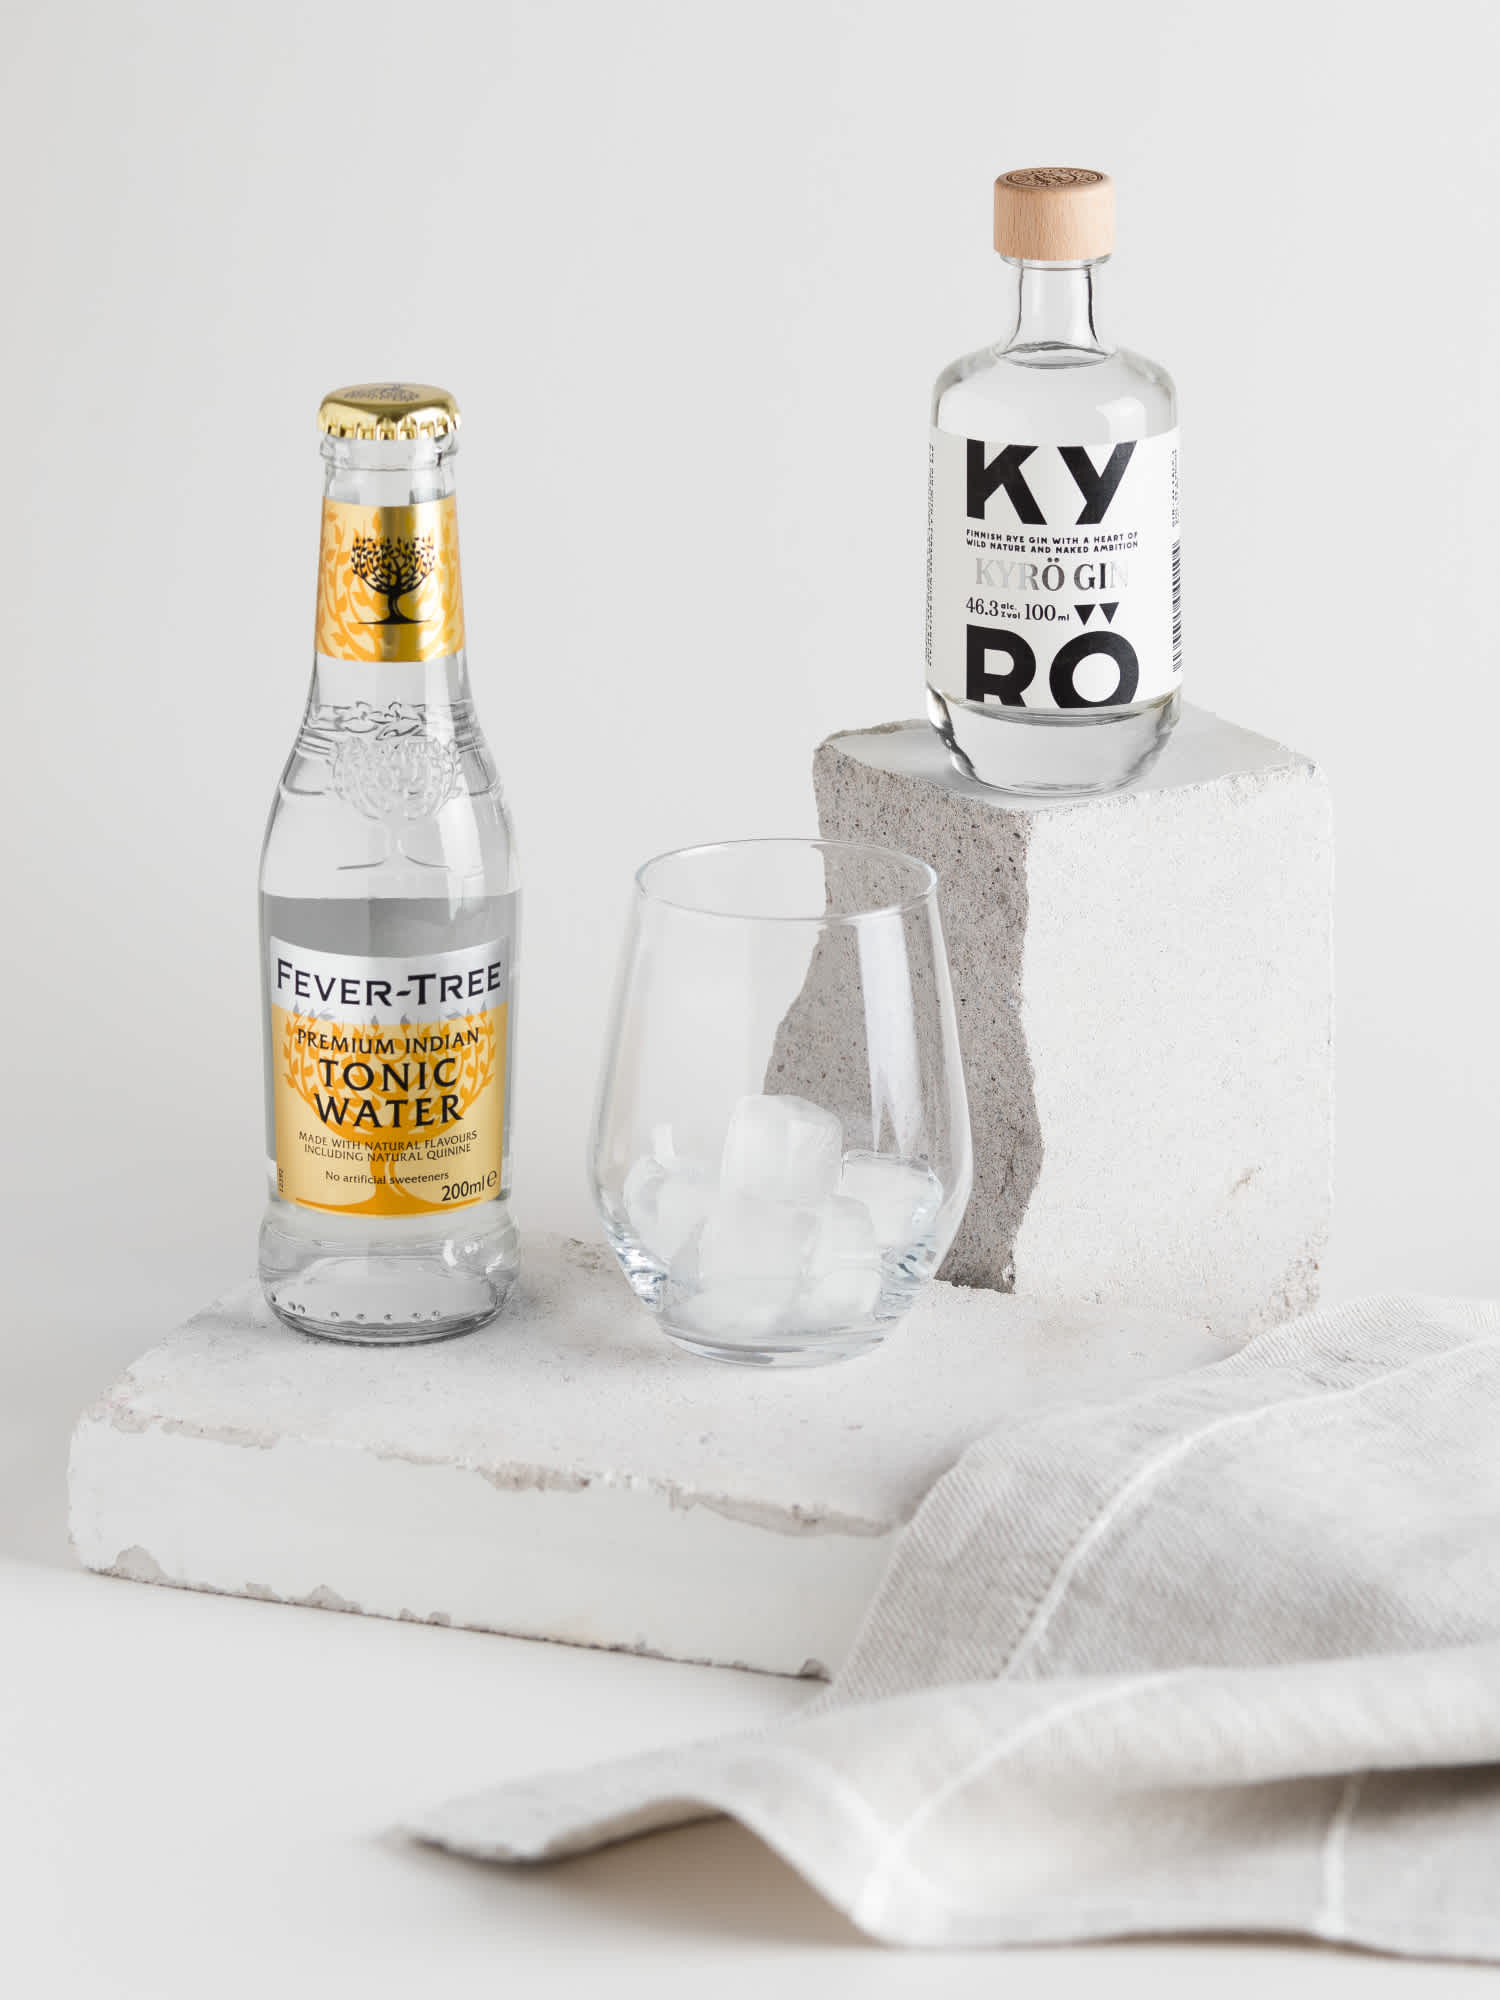 A 100 ml bottle of Kyrö Gin stands on top of a concrete block. Below it, on another concrete block, a 330ml bottle of Fever-Tree Indian Tonic stands next to a glass filled with ice. Next to that, a linen tea towel lays.